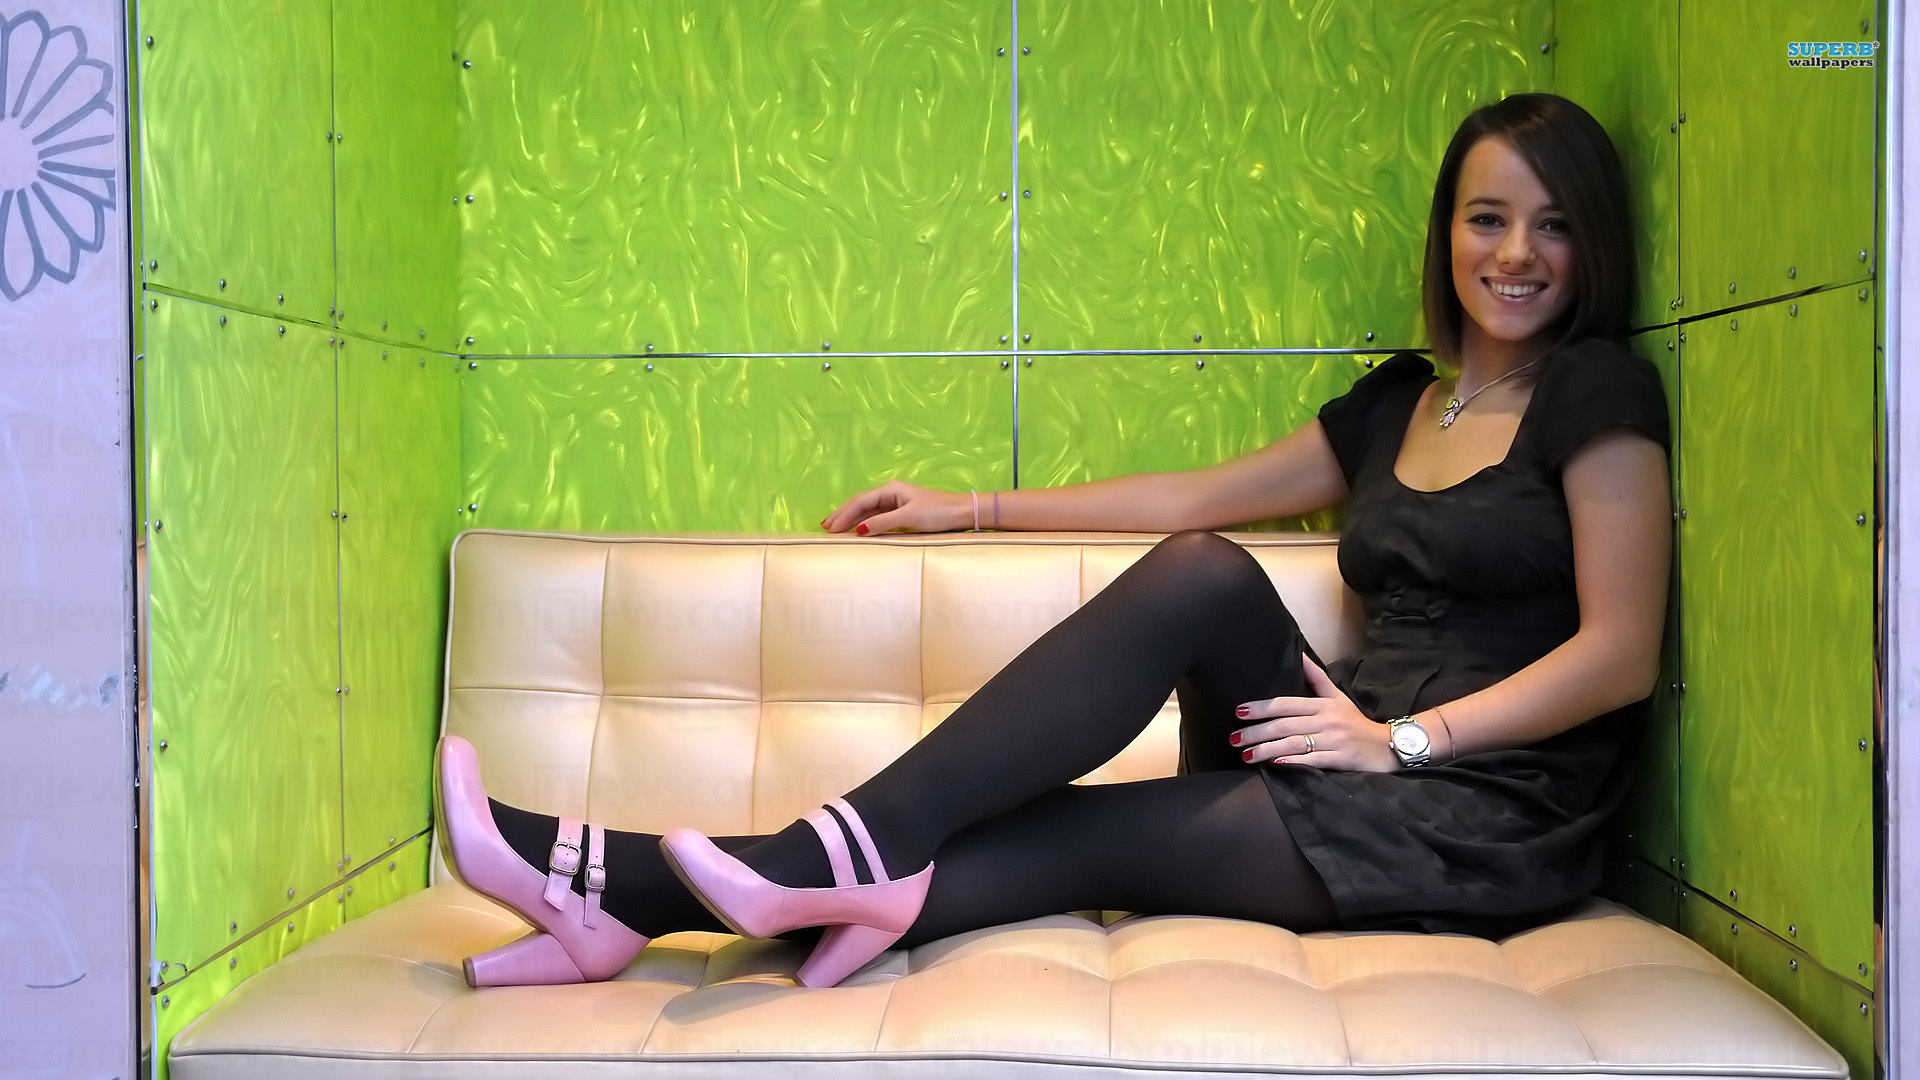 Alizee Wallpapers High Quality   Download Free